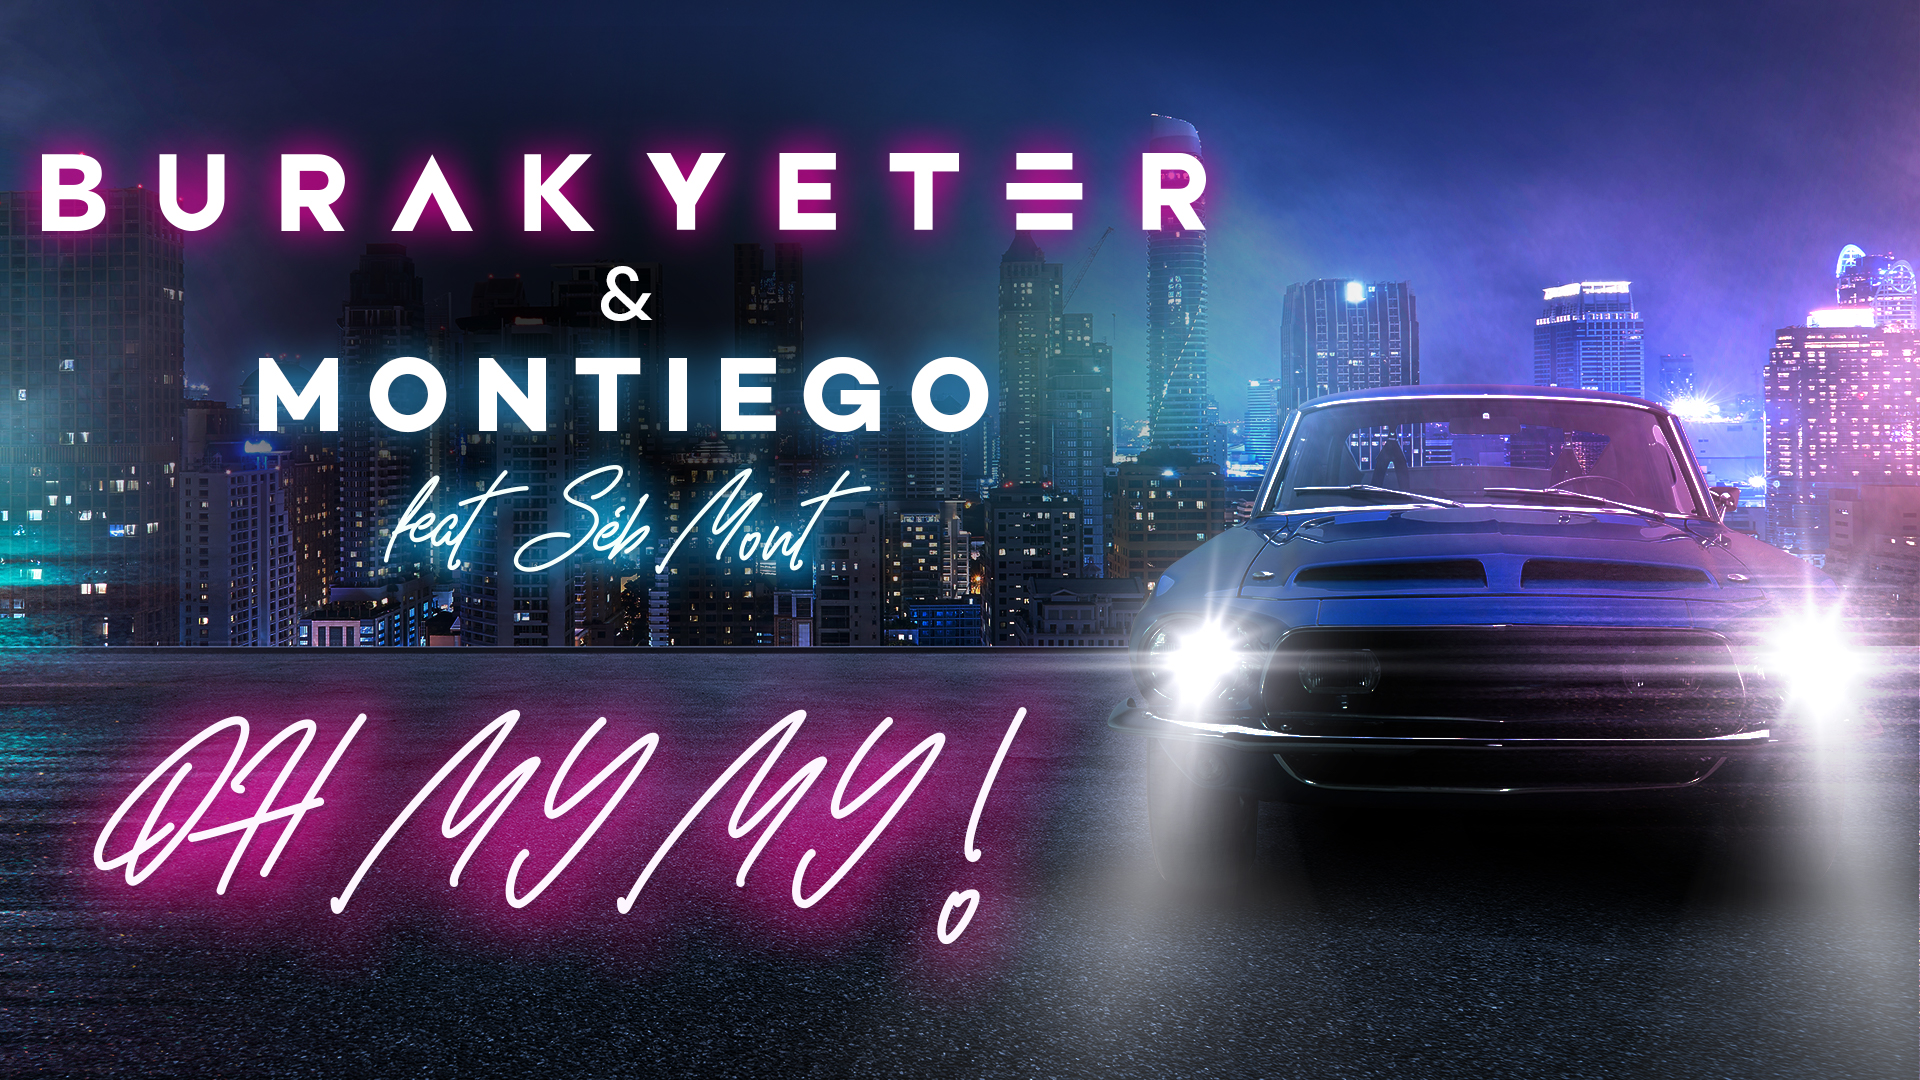 Burak Yeter & Montiego – Oh My My feat. Séb Mont is OUT NOW